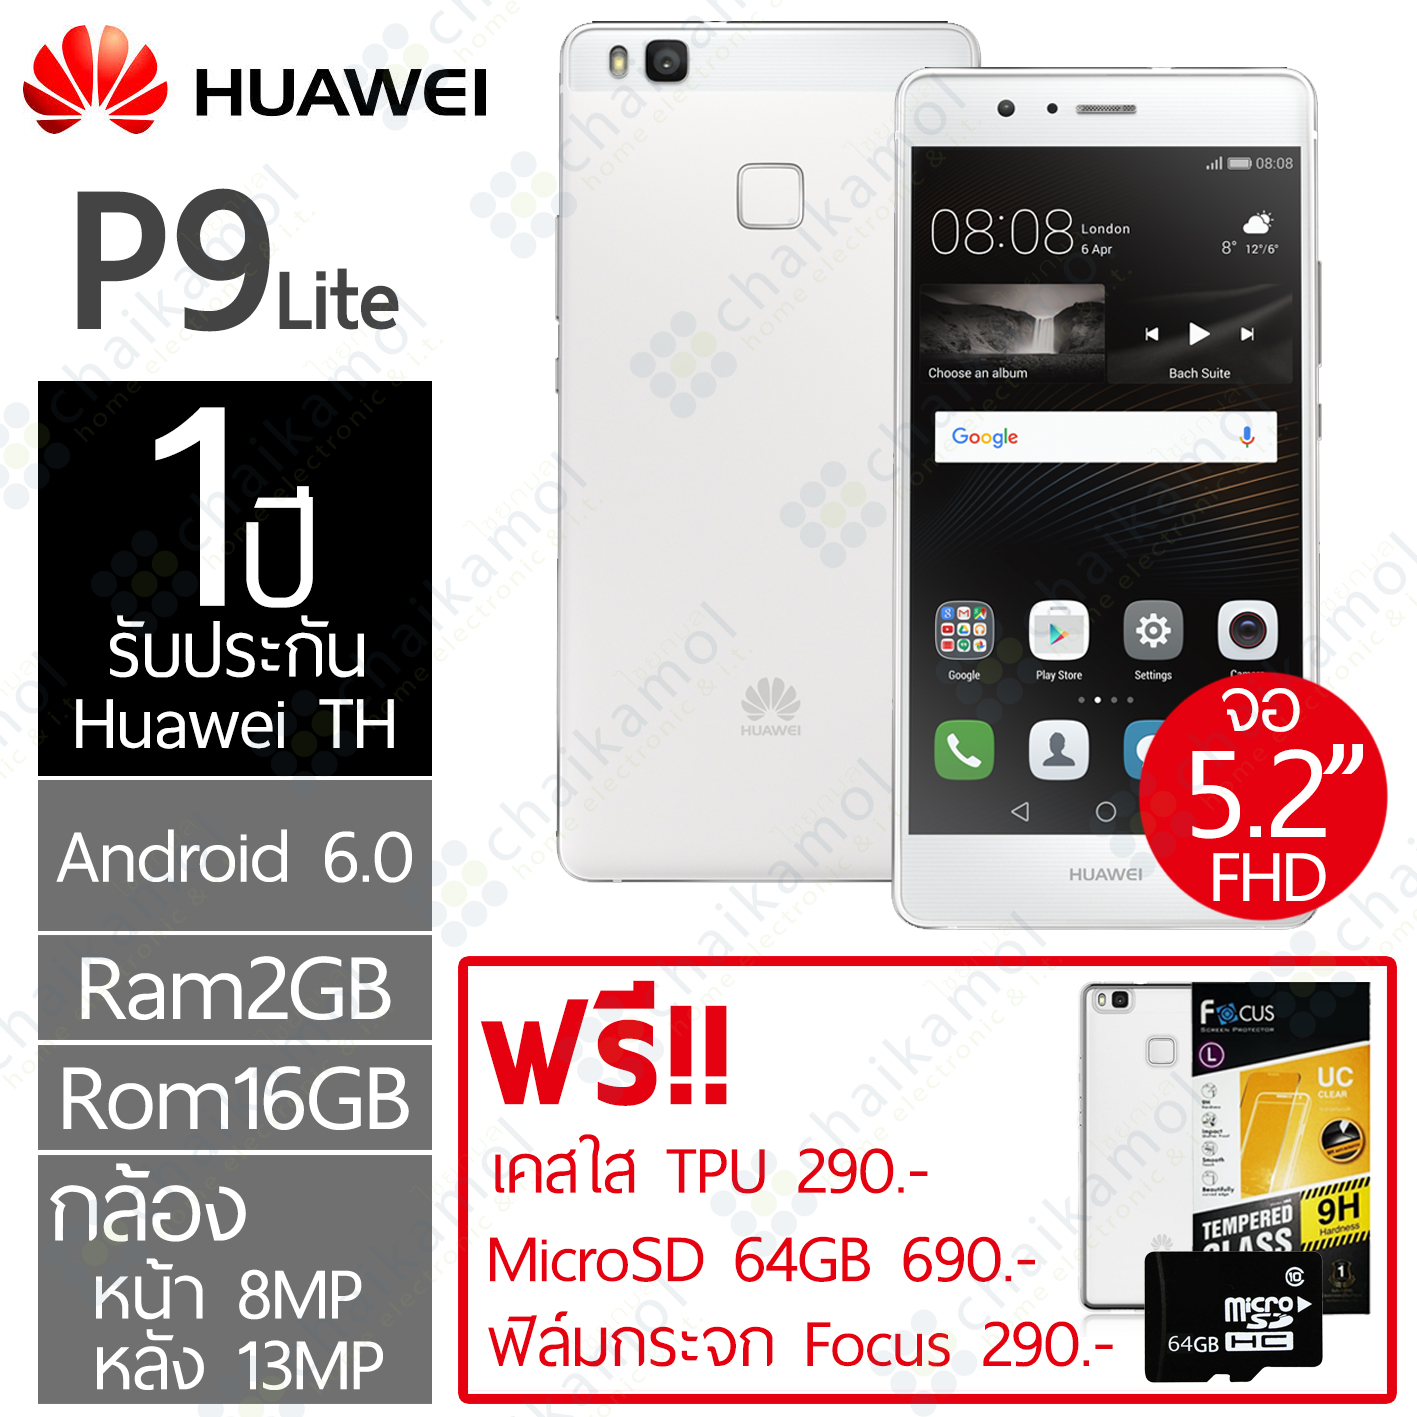 "Huawei P9 lite 5.2""FHD Android 6.0/ Ram2G/Rom16G/ประกันศูนย์ (White)"